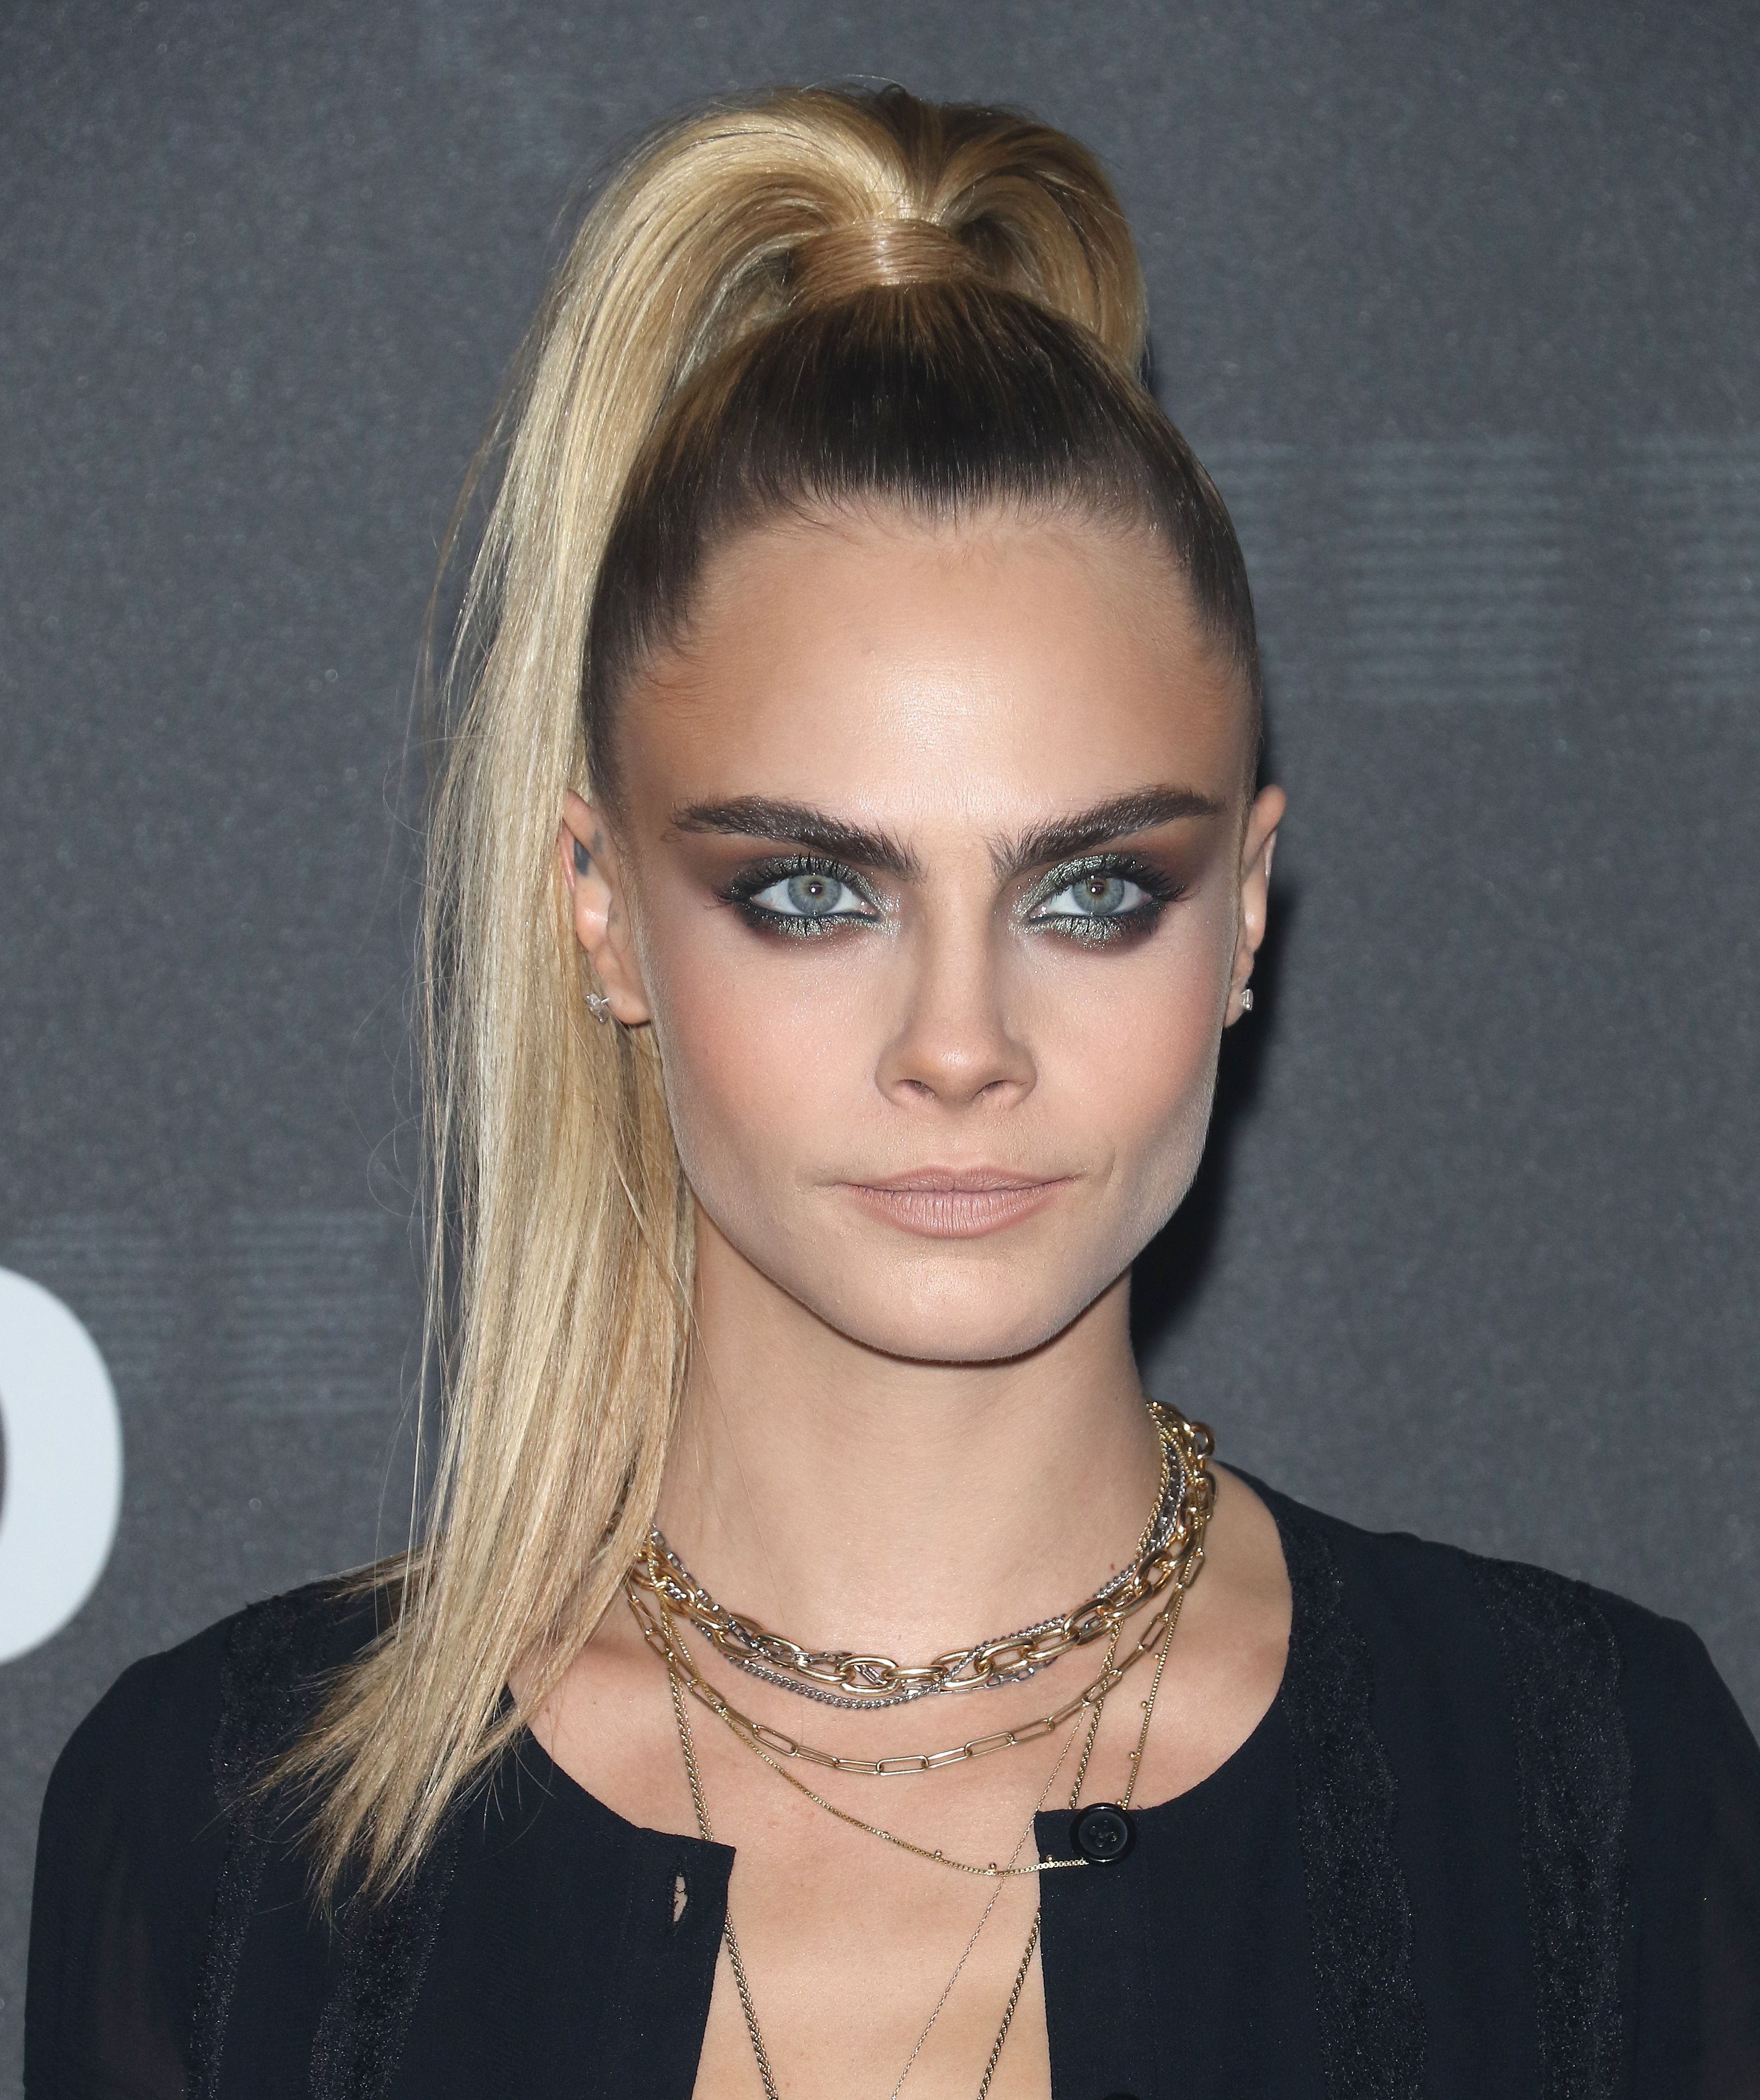 Cara Delevigne takes a stand against Justin Bieber